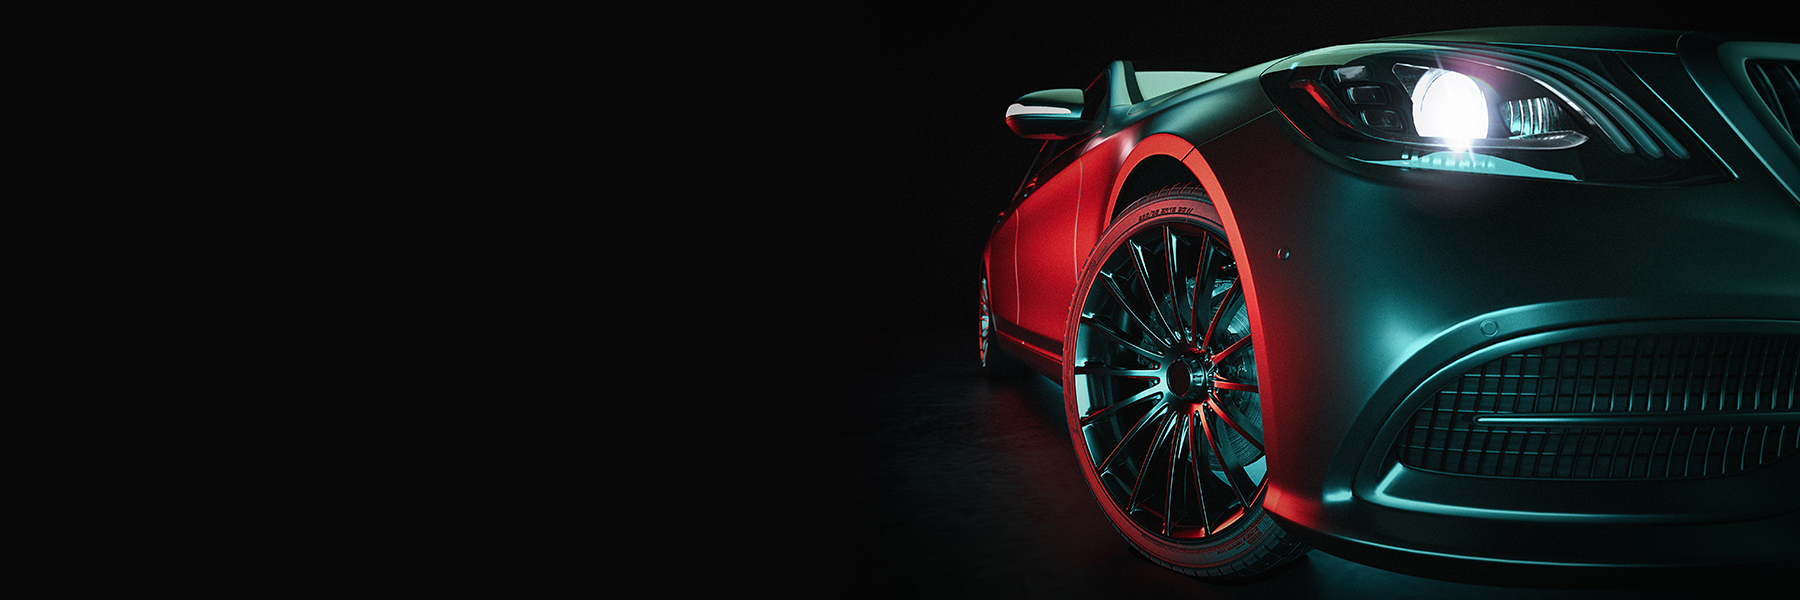 Automotive Industry Banner